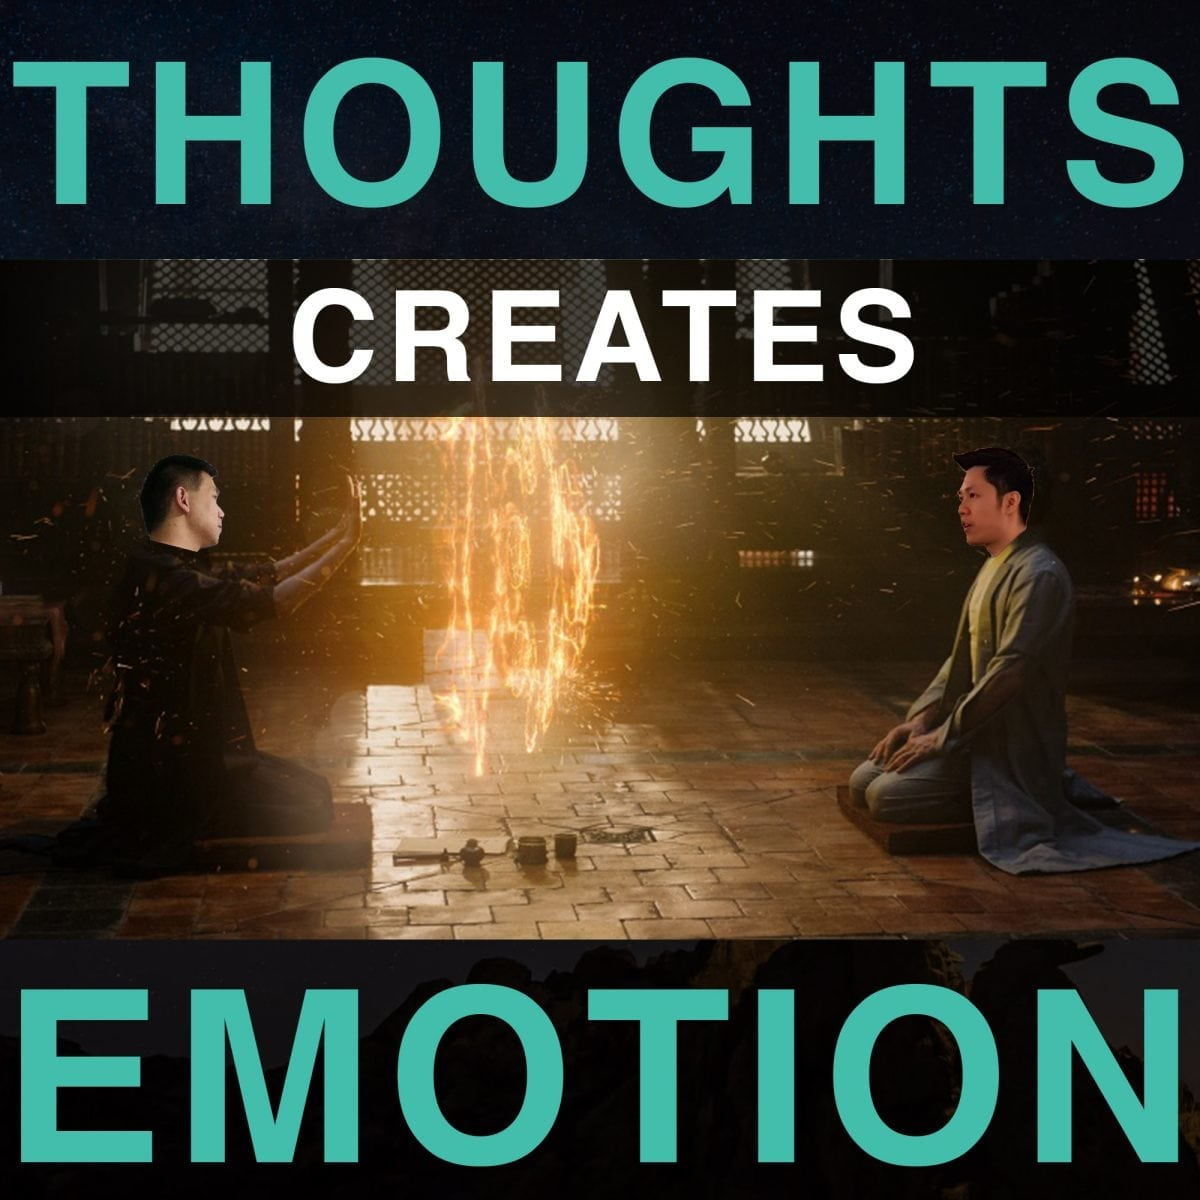 Thoughts Creates Emotion